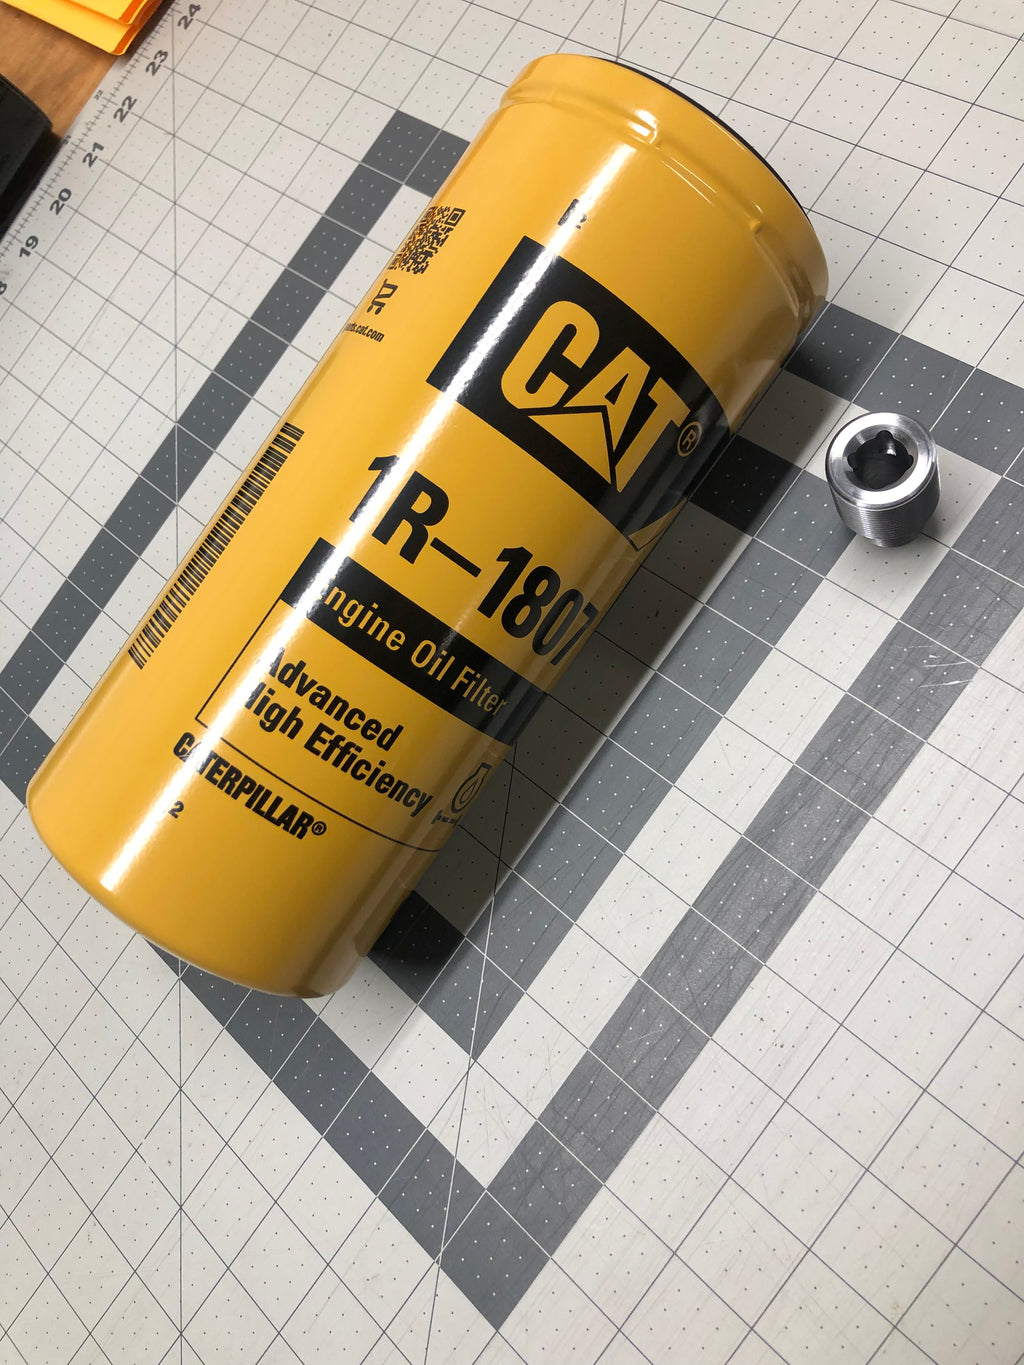 01-Current Duramax Cat Oil filter conversion kit